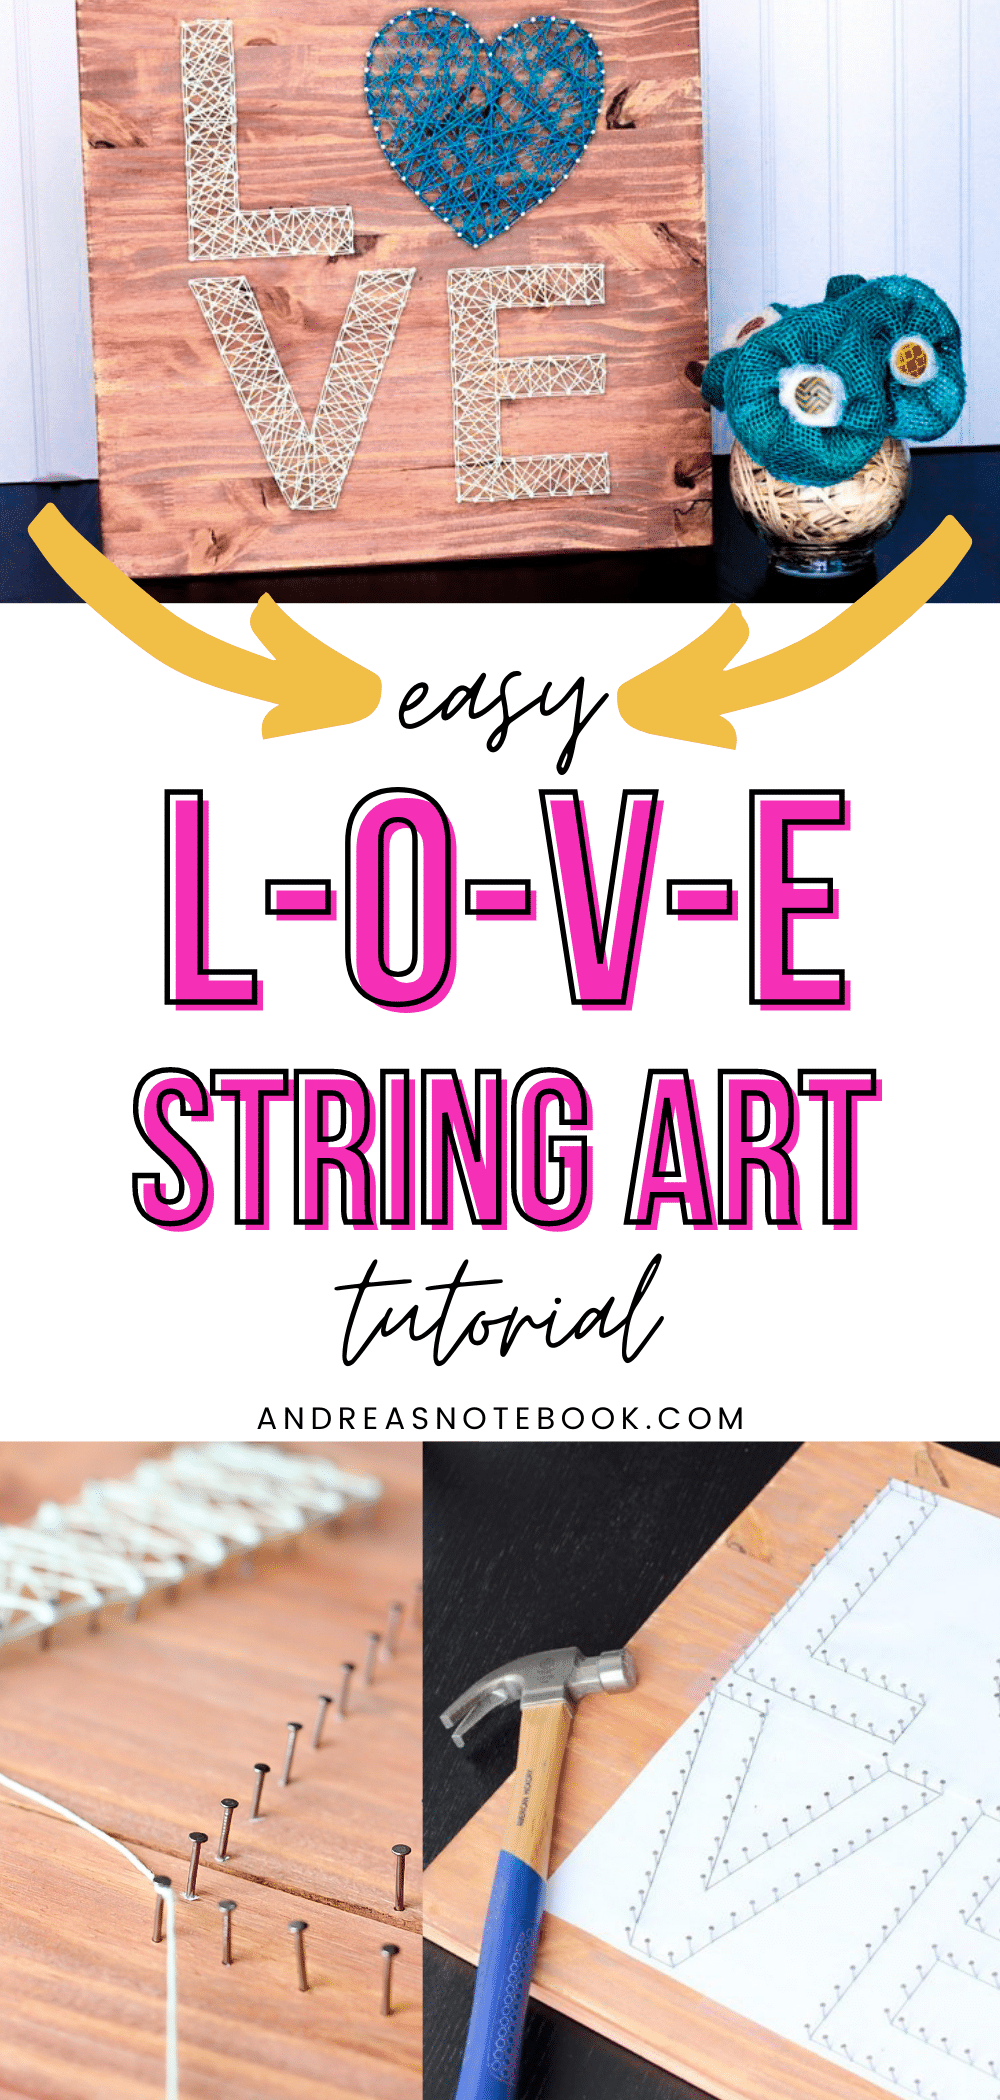 "collage- text says ""easy L-O-V-E string art tutorial"". Photos of wooden board with nails and strings forming the letters LOVE. Up close photo of string wrapped around nail and photo of paper template on board showing where nails should be"